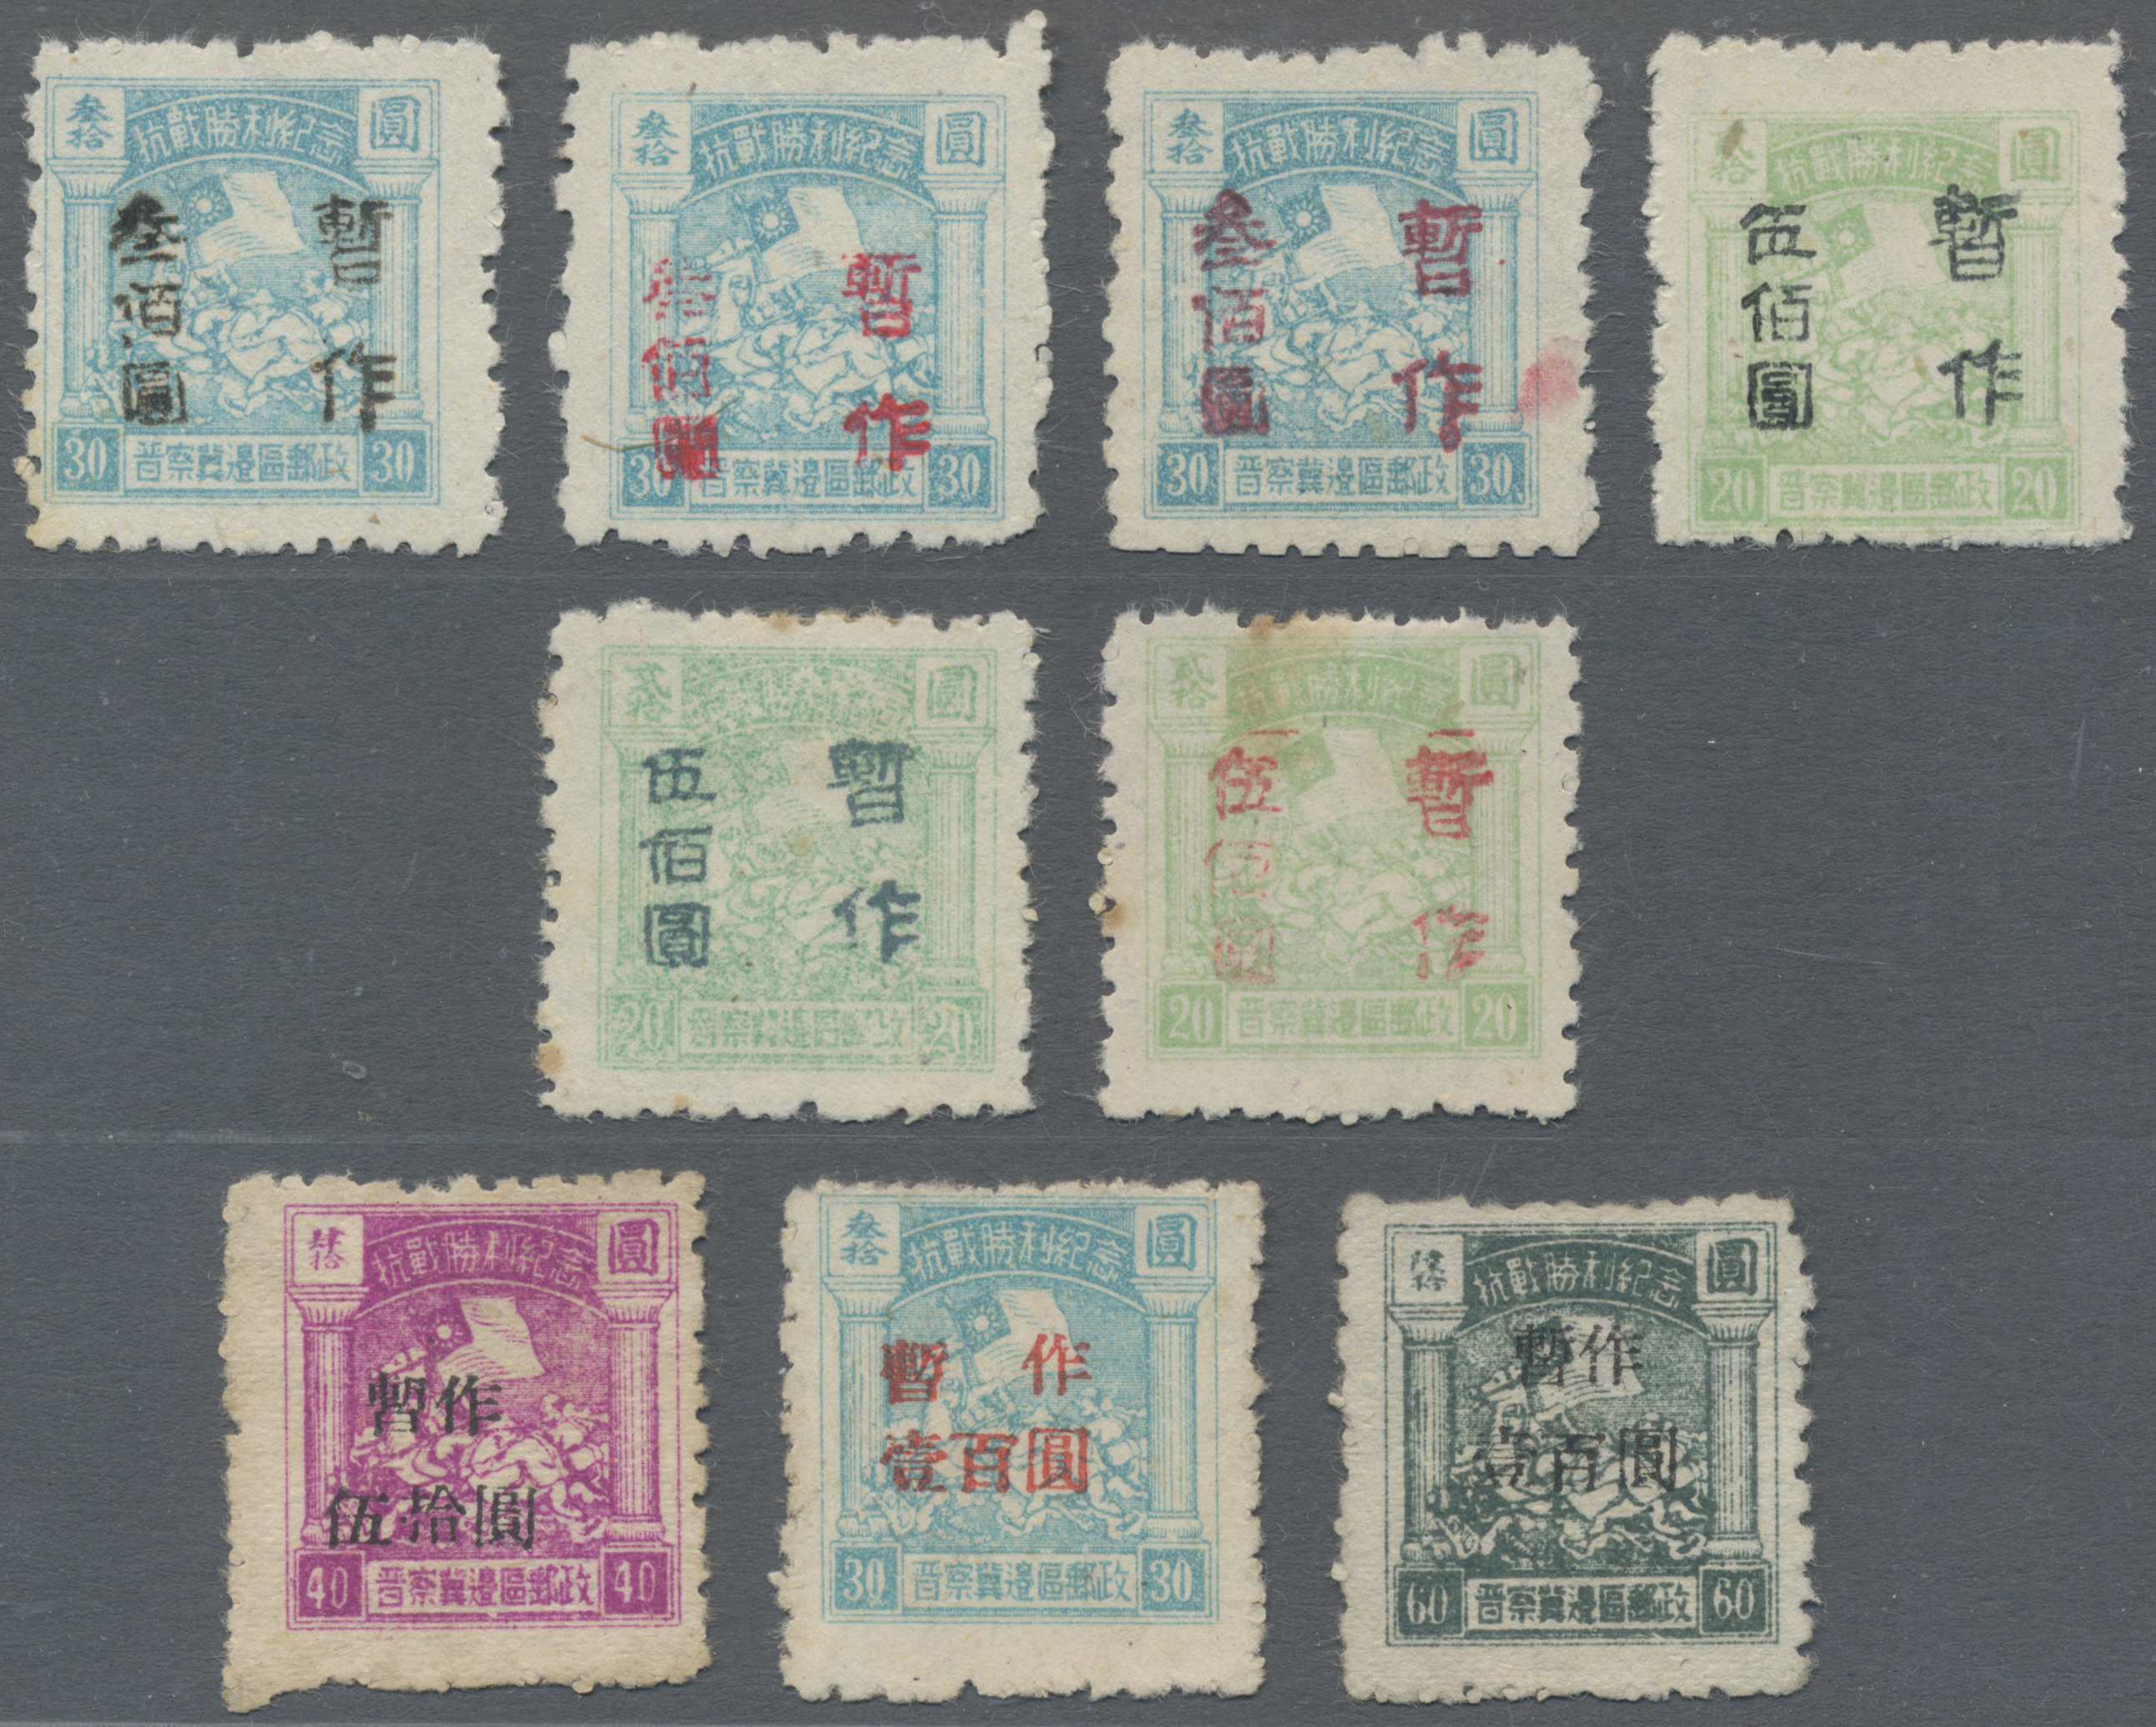 Lot 05009 - China - Volksrepublik - Provinzen  -  Auktionshaus Christoph Gärtner GmbH & Co. KG Sale #46 Special Auction China - including Liberated Areas